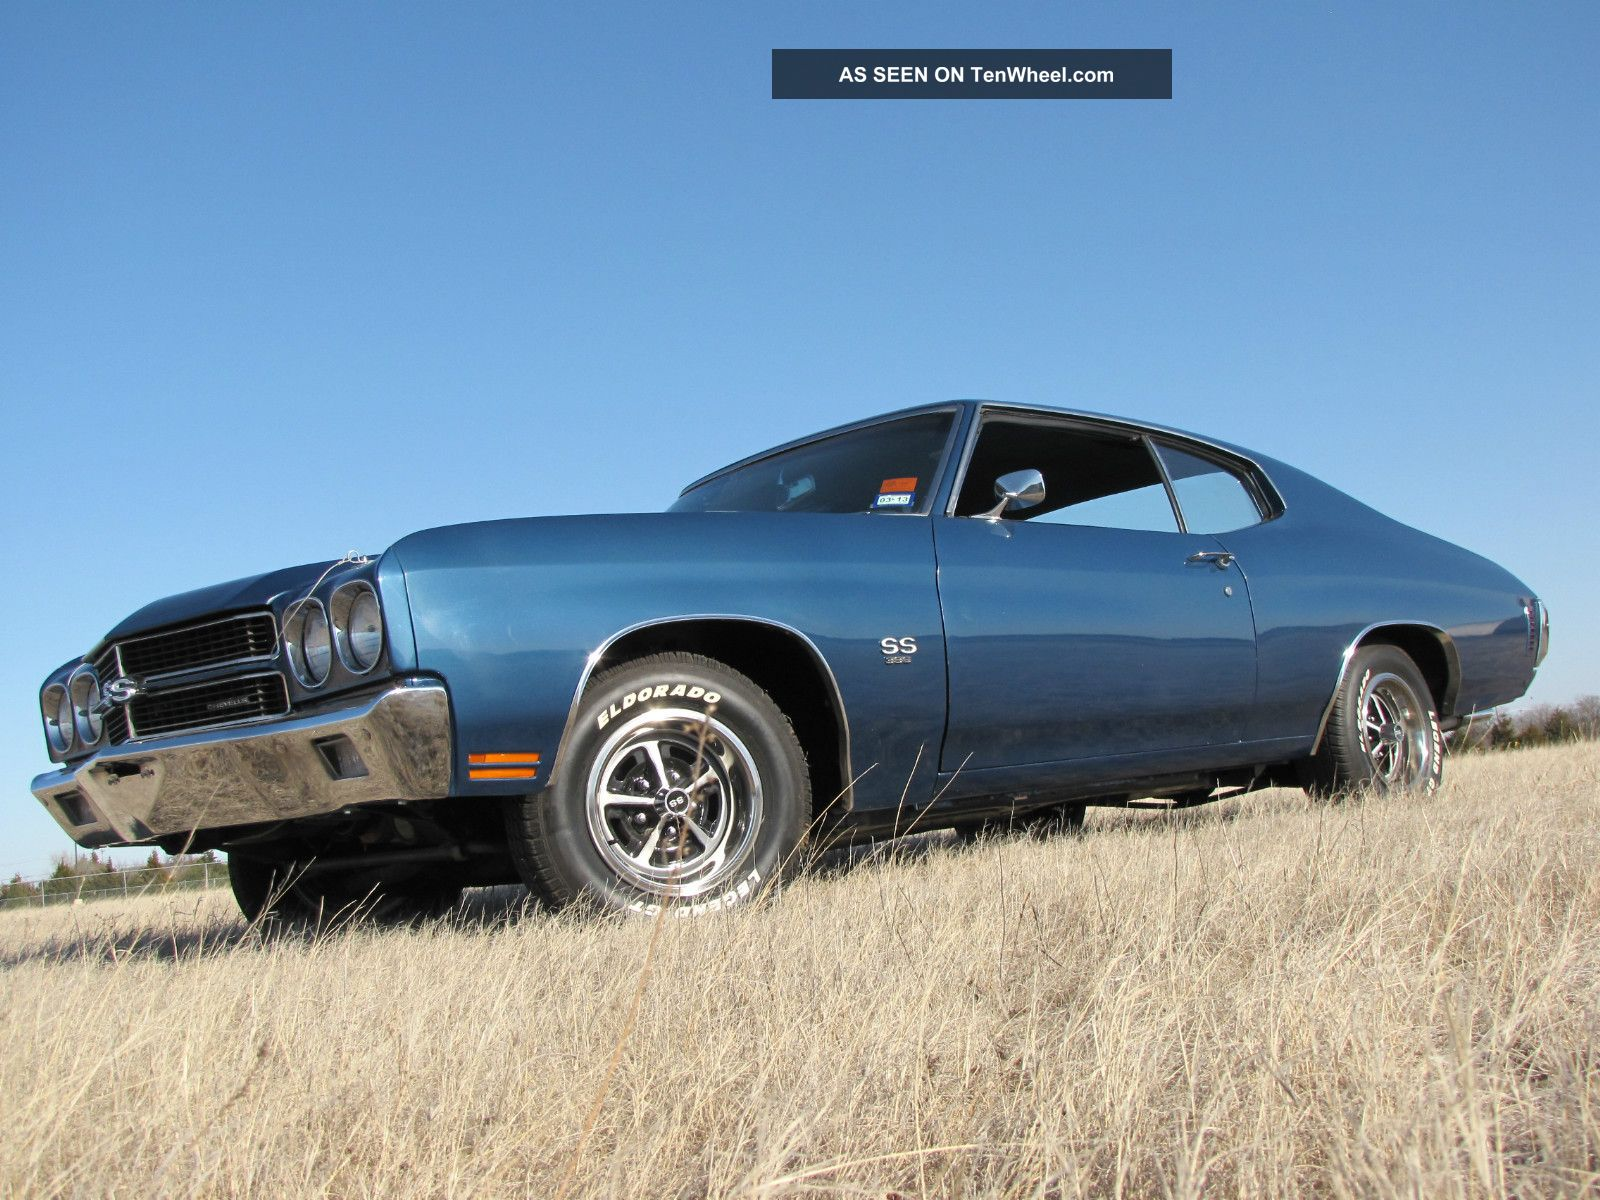 1970 Chevrolet Chevelle Ss 396 350hp 4 - Speed Frame Off F41 Ps Pb Ac With Gm Docs Chevelle photo